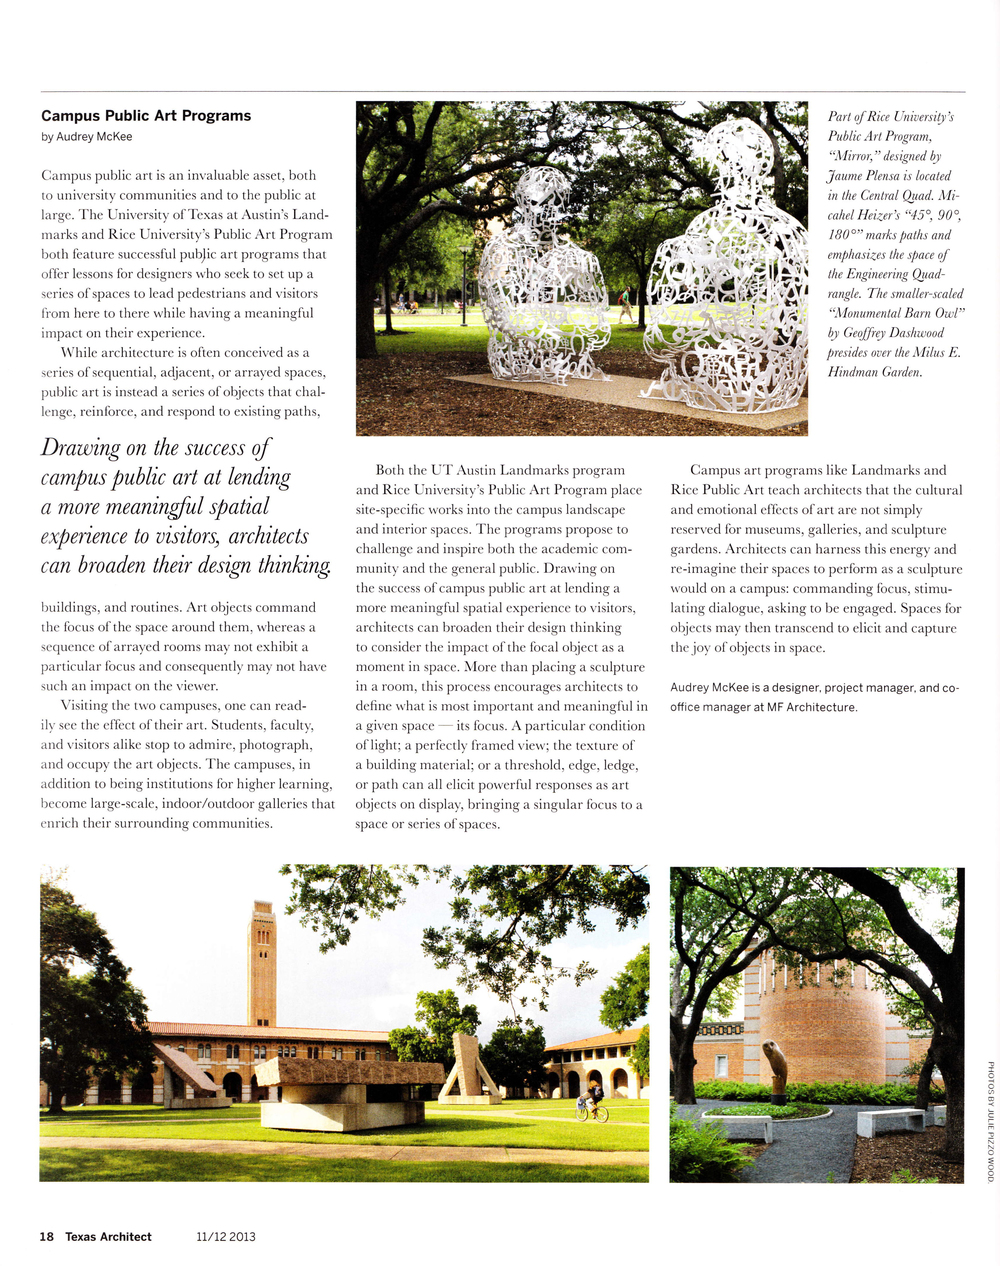 2013_1204_Texas Architect 11122013_Page_1.jpg